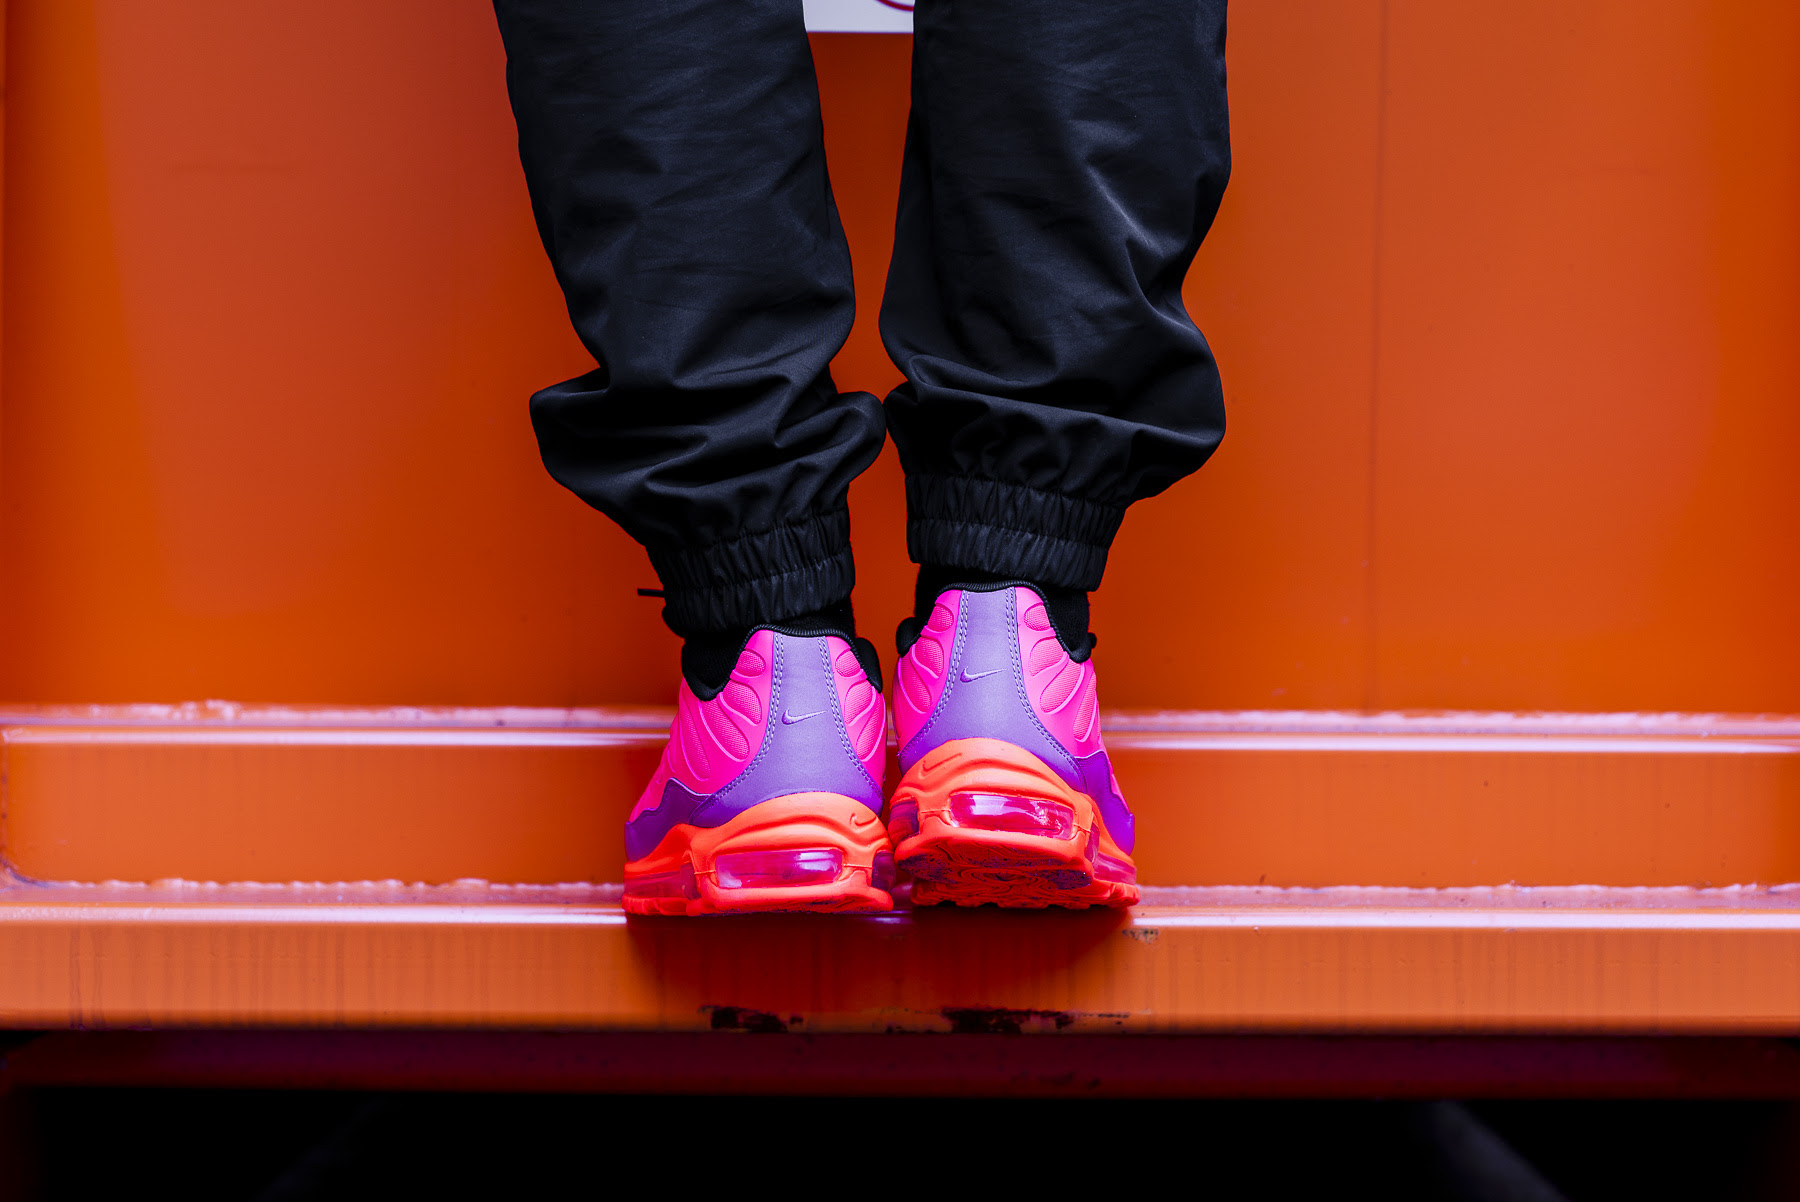 ba0d53ab11 Nike Air Max 97 Plus Racer Pink: On-Foot Shots by OVERKILL - The ...